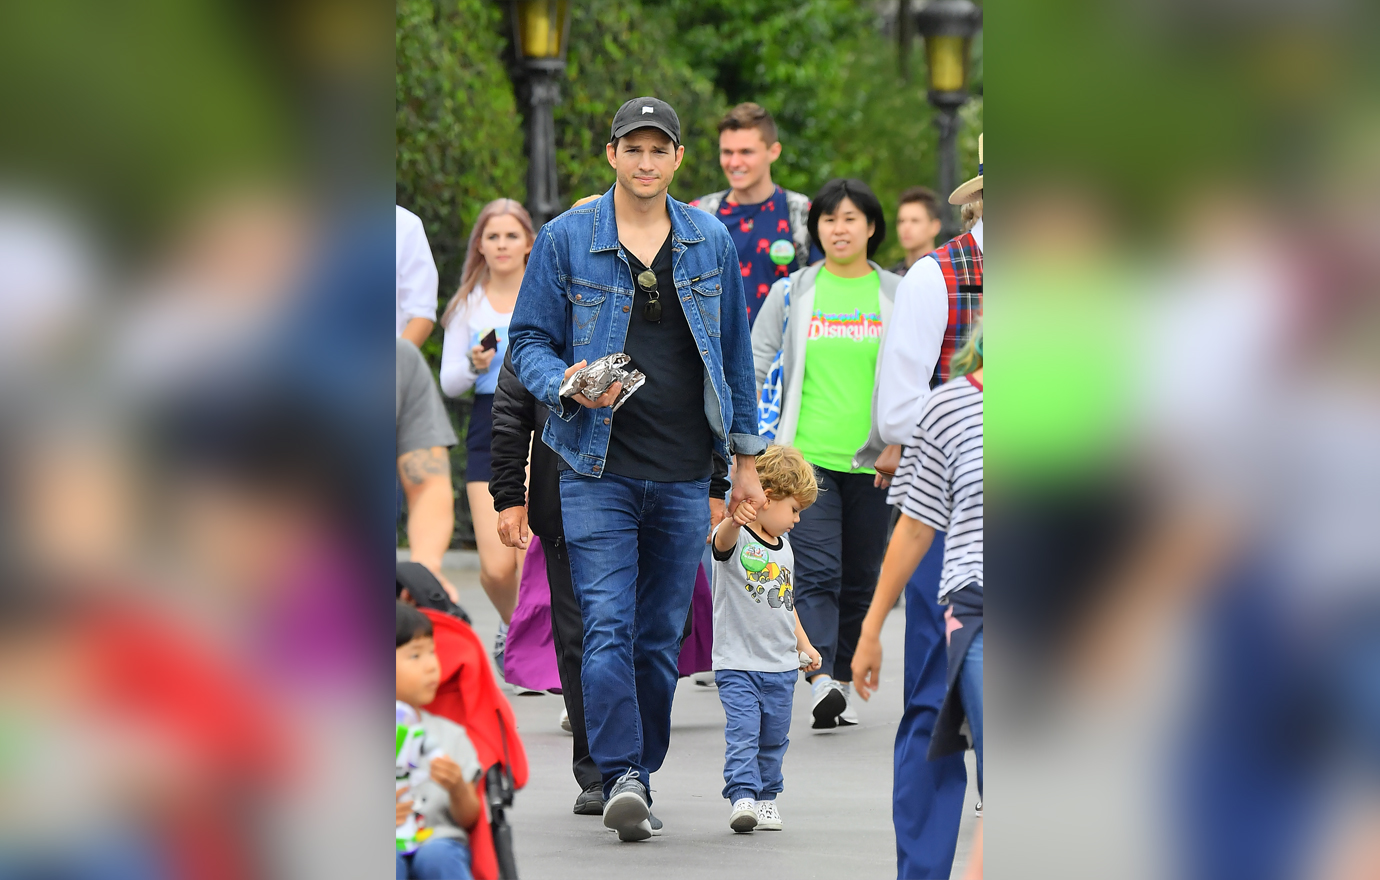 EXCLUSIVE: Ashton Kutcher and Mila Kunis celebrate their daughter's birthday at the happiest place on earth, Disneyland